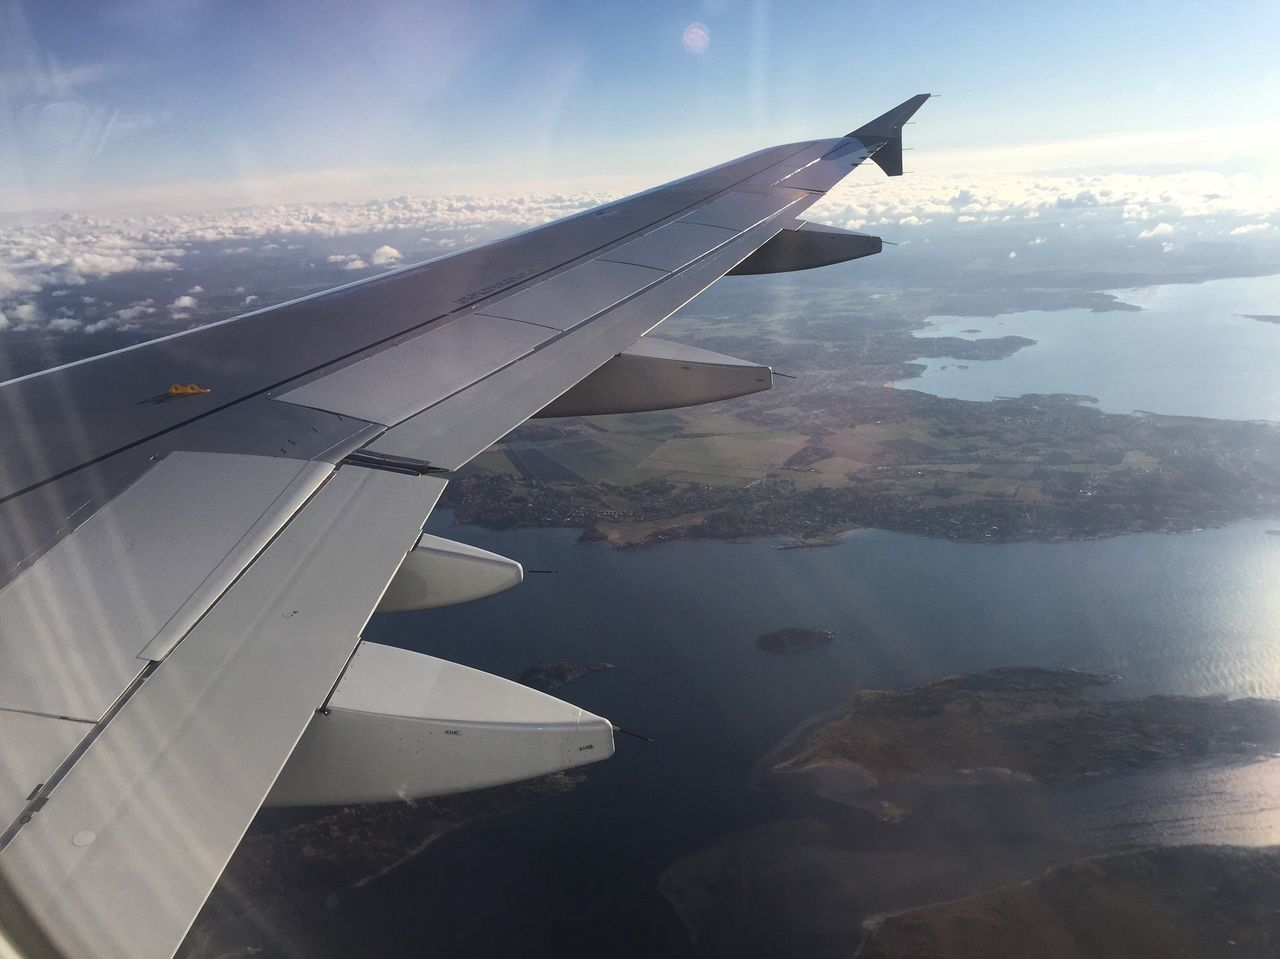 Airplane Flying Aerial View Transportation Aircraft Wing Journey Mode Of Transport Travel Landscape Sky Scenics Nature Island Lake Water Beautiful Colors High Angle View Colour Of Life Beauty In Nature Nature Photography Winter Sweden My Year My View